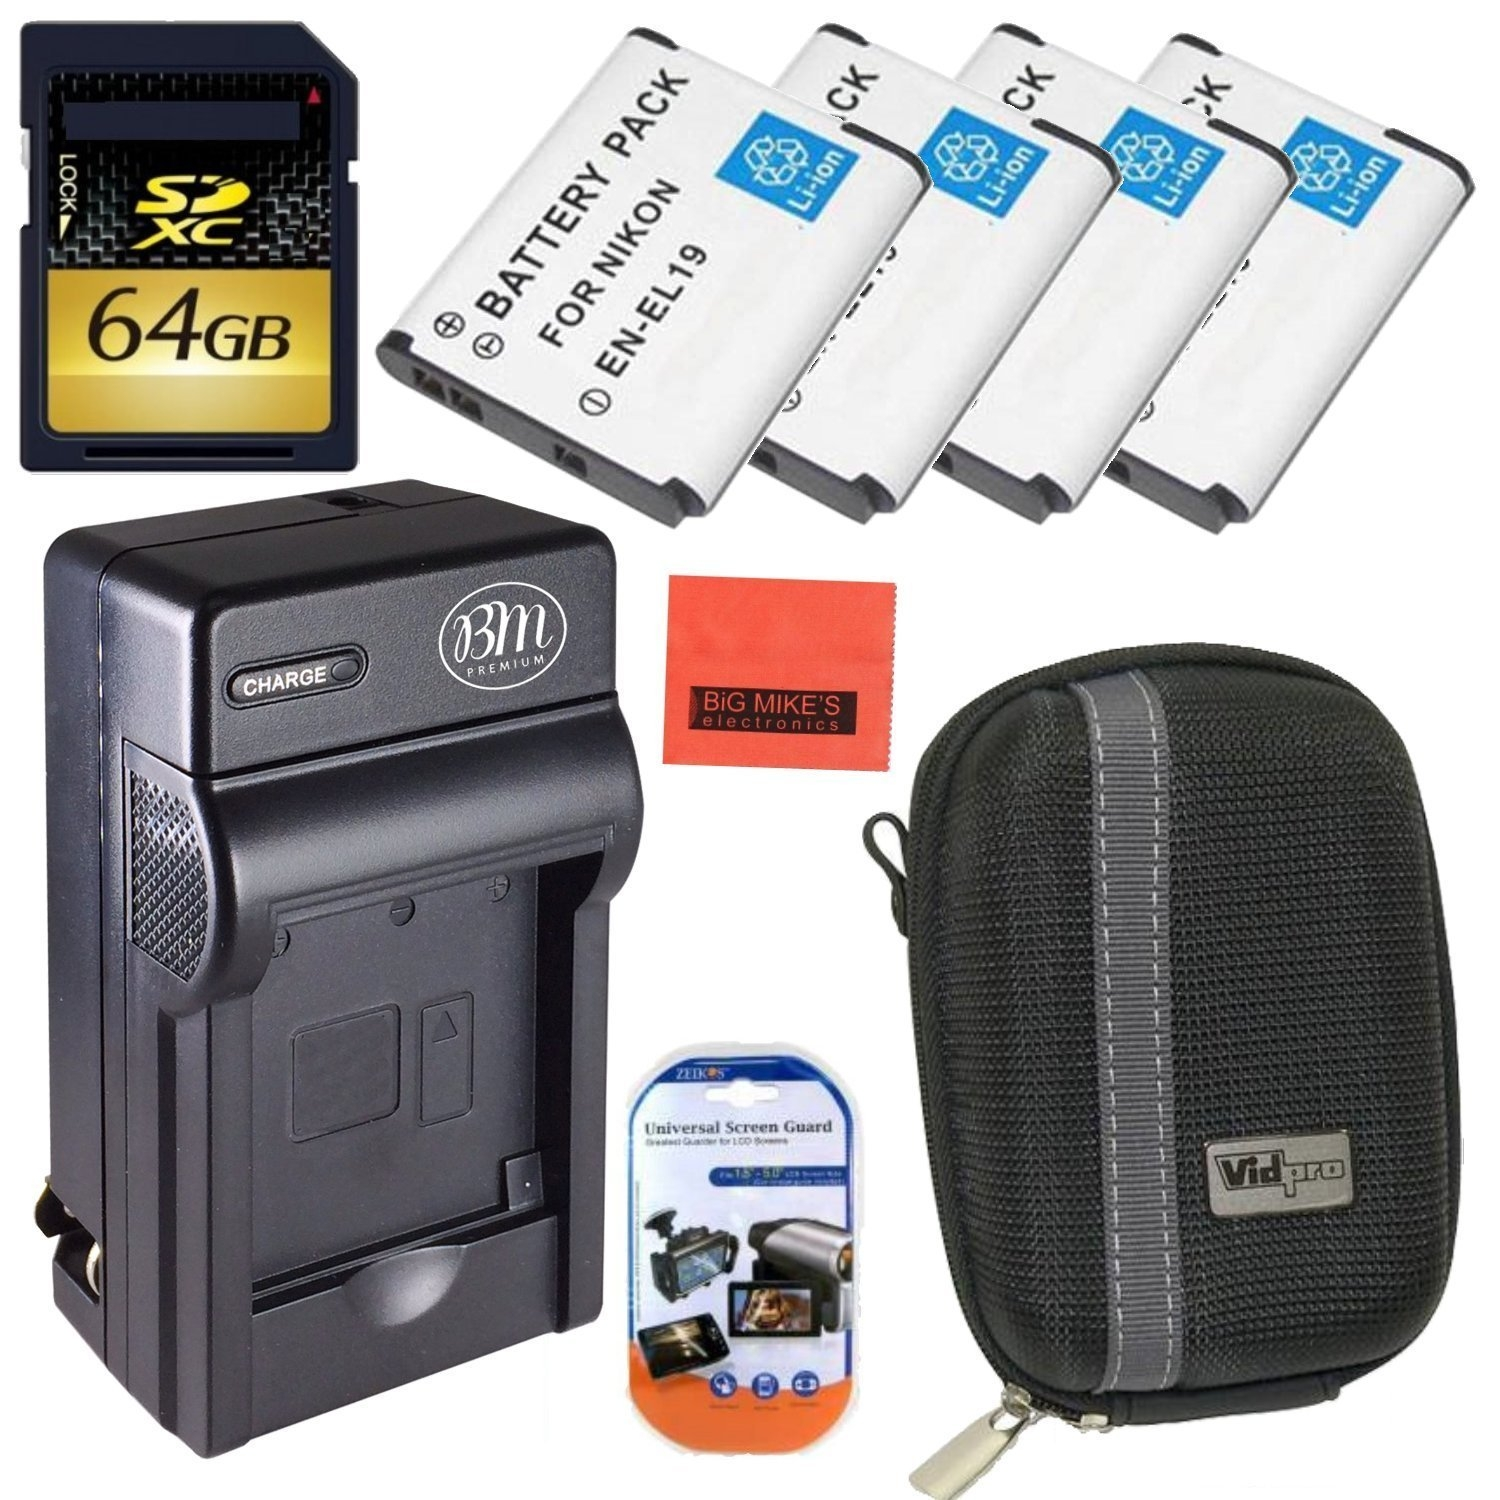 High Power Accessory Kit for Nikon Coolpix S3500 S3600 S4200 S4300 S5200 S5300 S6400 S6500 S6800 Digital Camera - Includes 4 Pack of ENEL19 Batteries + 64GB SD Memory Card + Deluxe Carrying Case +...